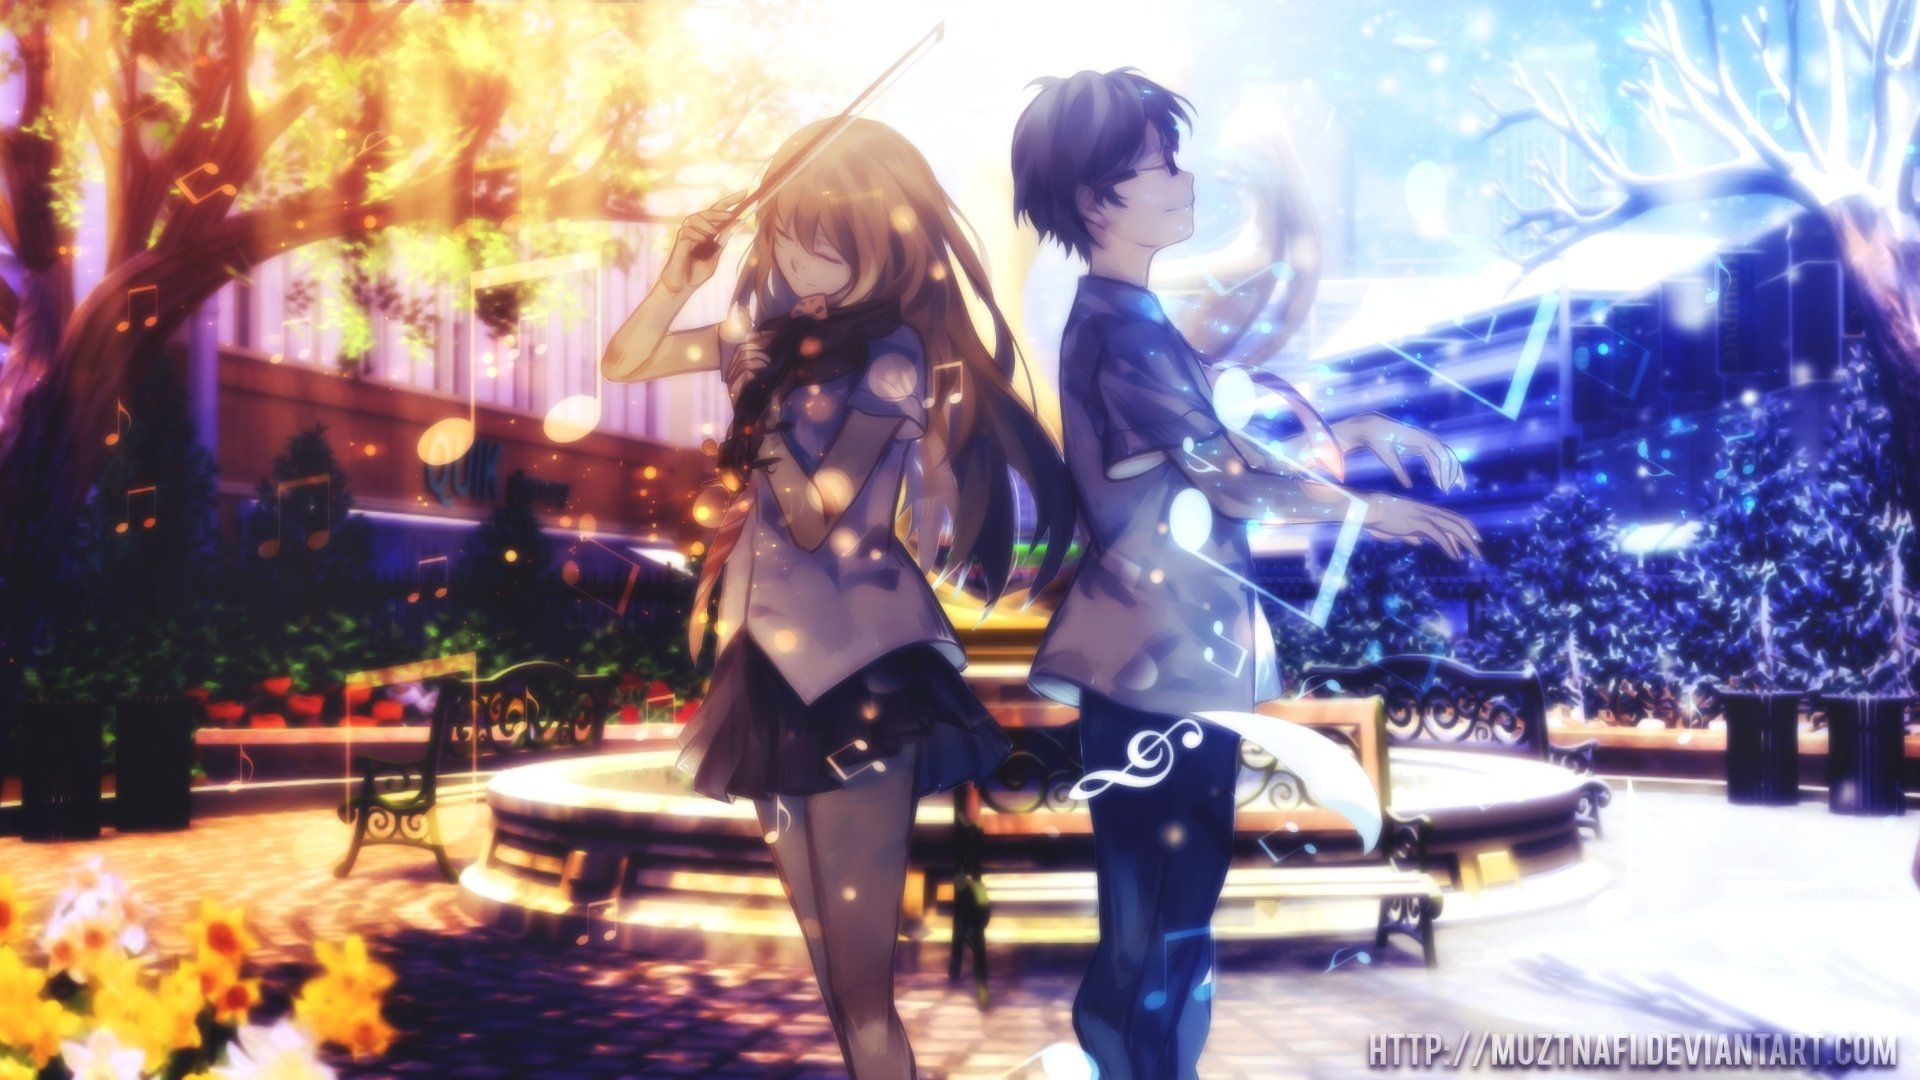 903 Shigatsu Wa Kimi No Uso Hd Wallpapers And Background Images Download For Free On All Your Devices Co Anime Triste Casal Anime Desenhos Romanticos Tumblr